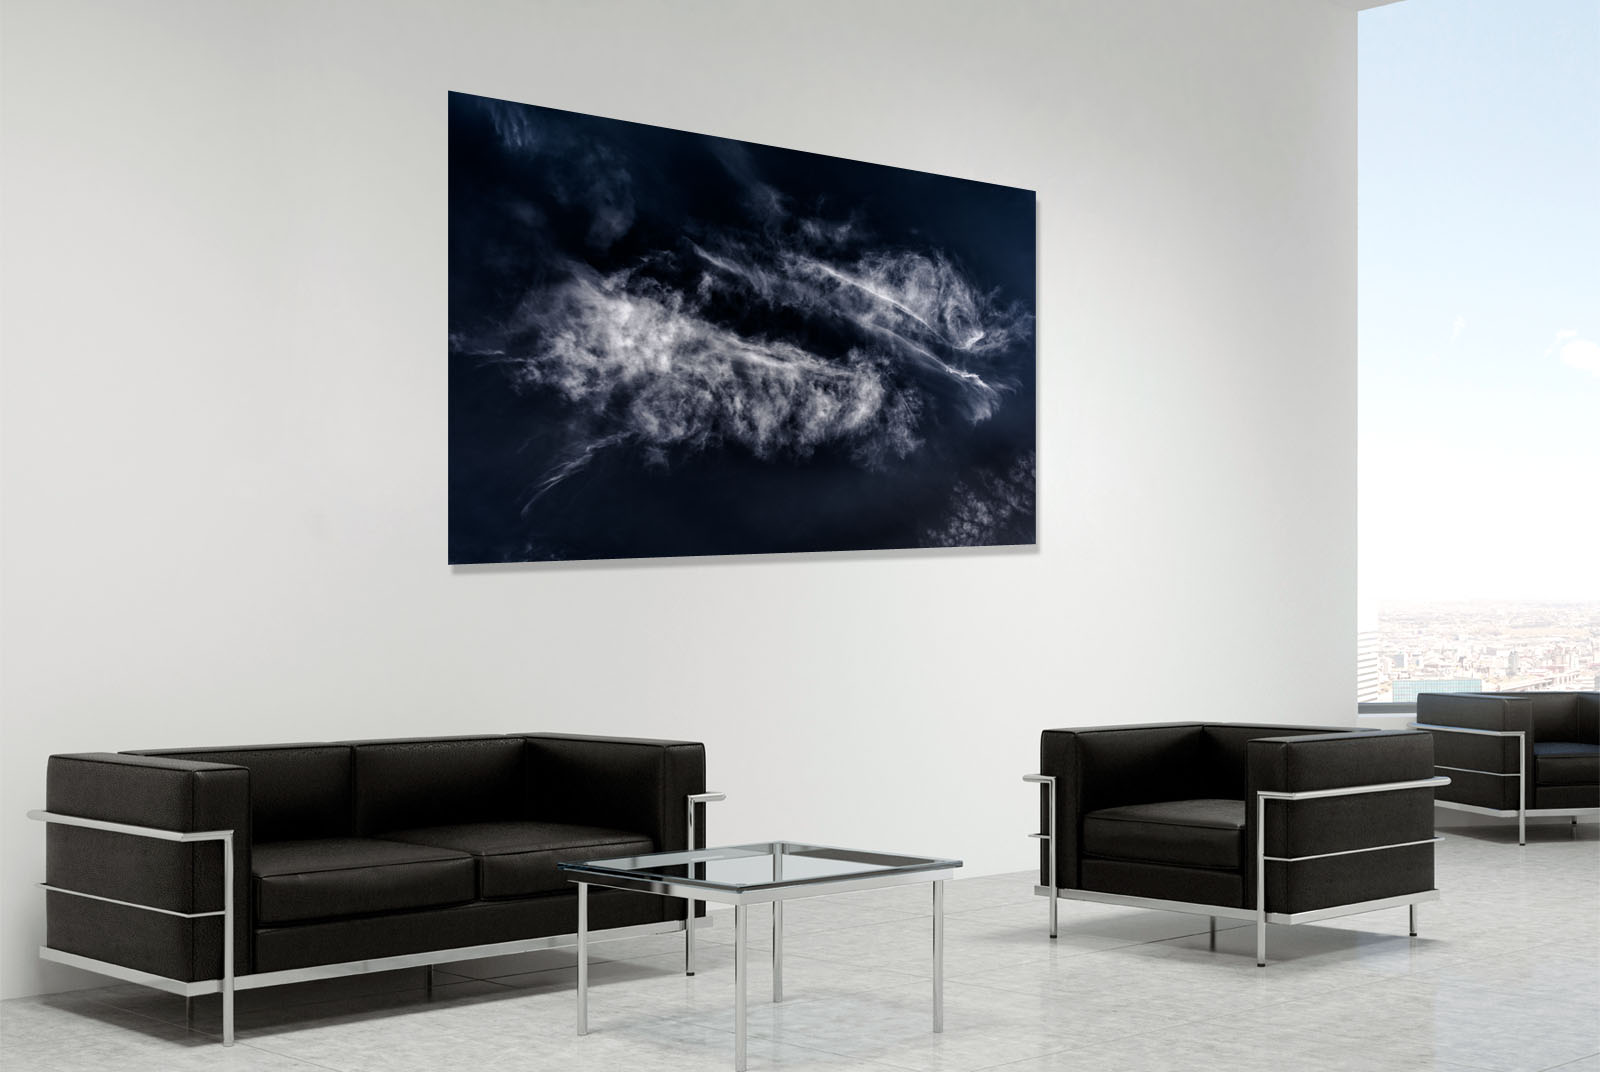 Fine art landscape photograph in a room setting - photo reference 5254.